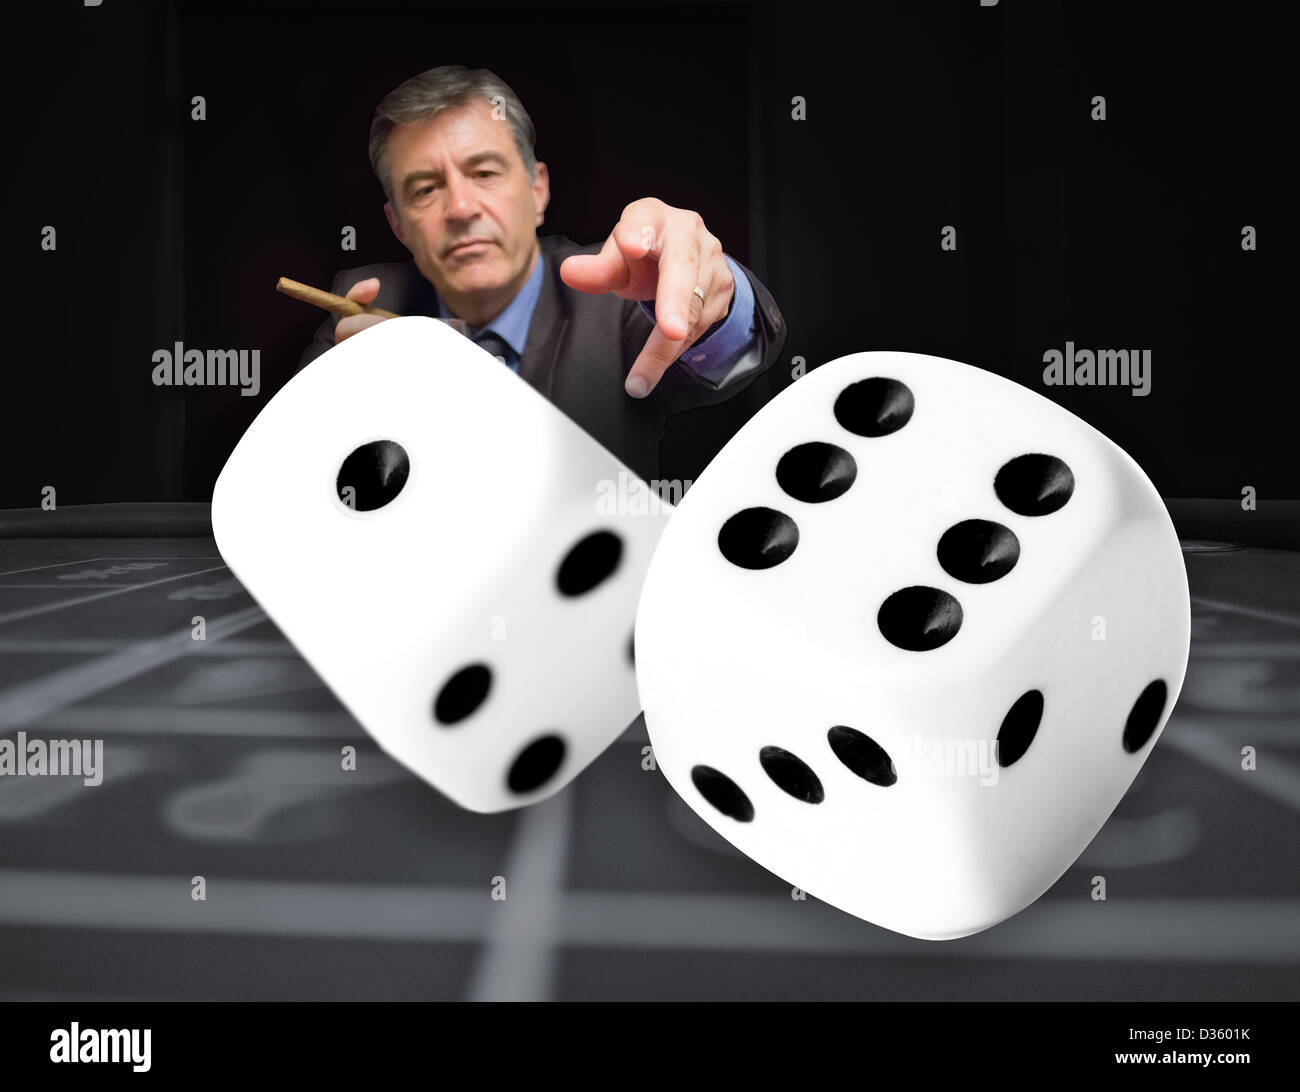 Gambler at the poker table with digital dice in foreground - Stock Image